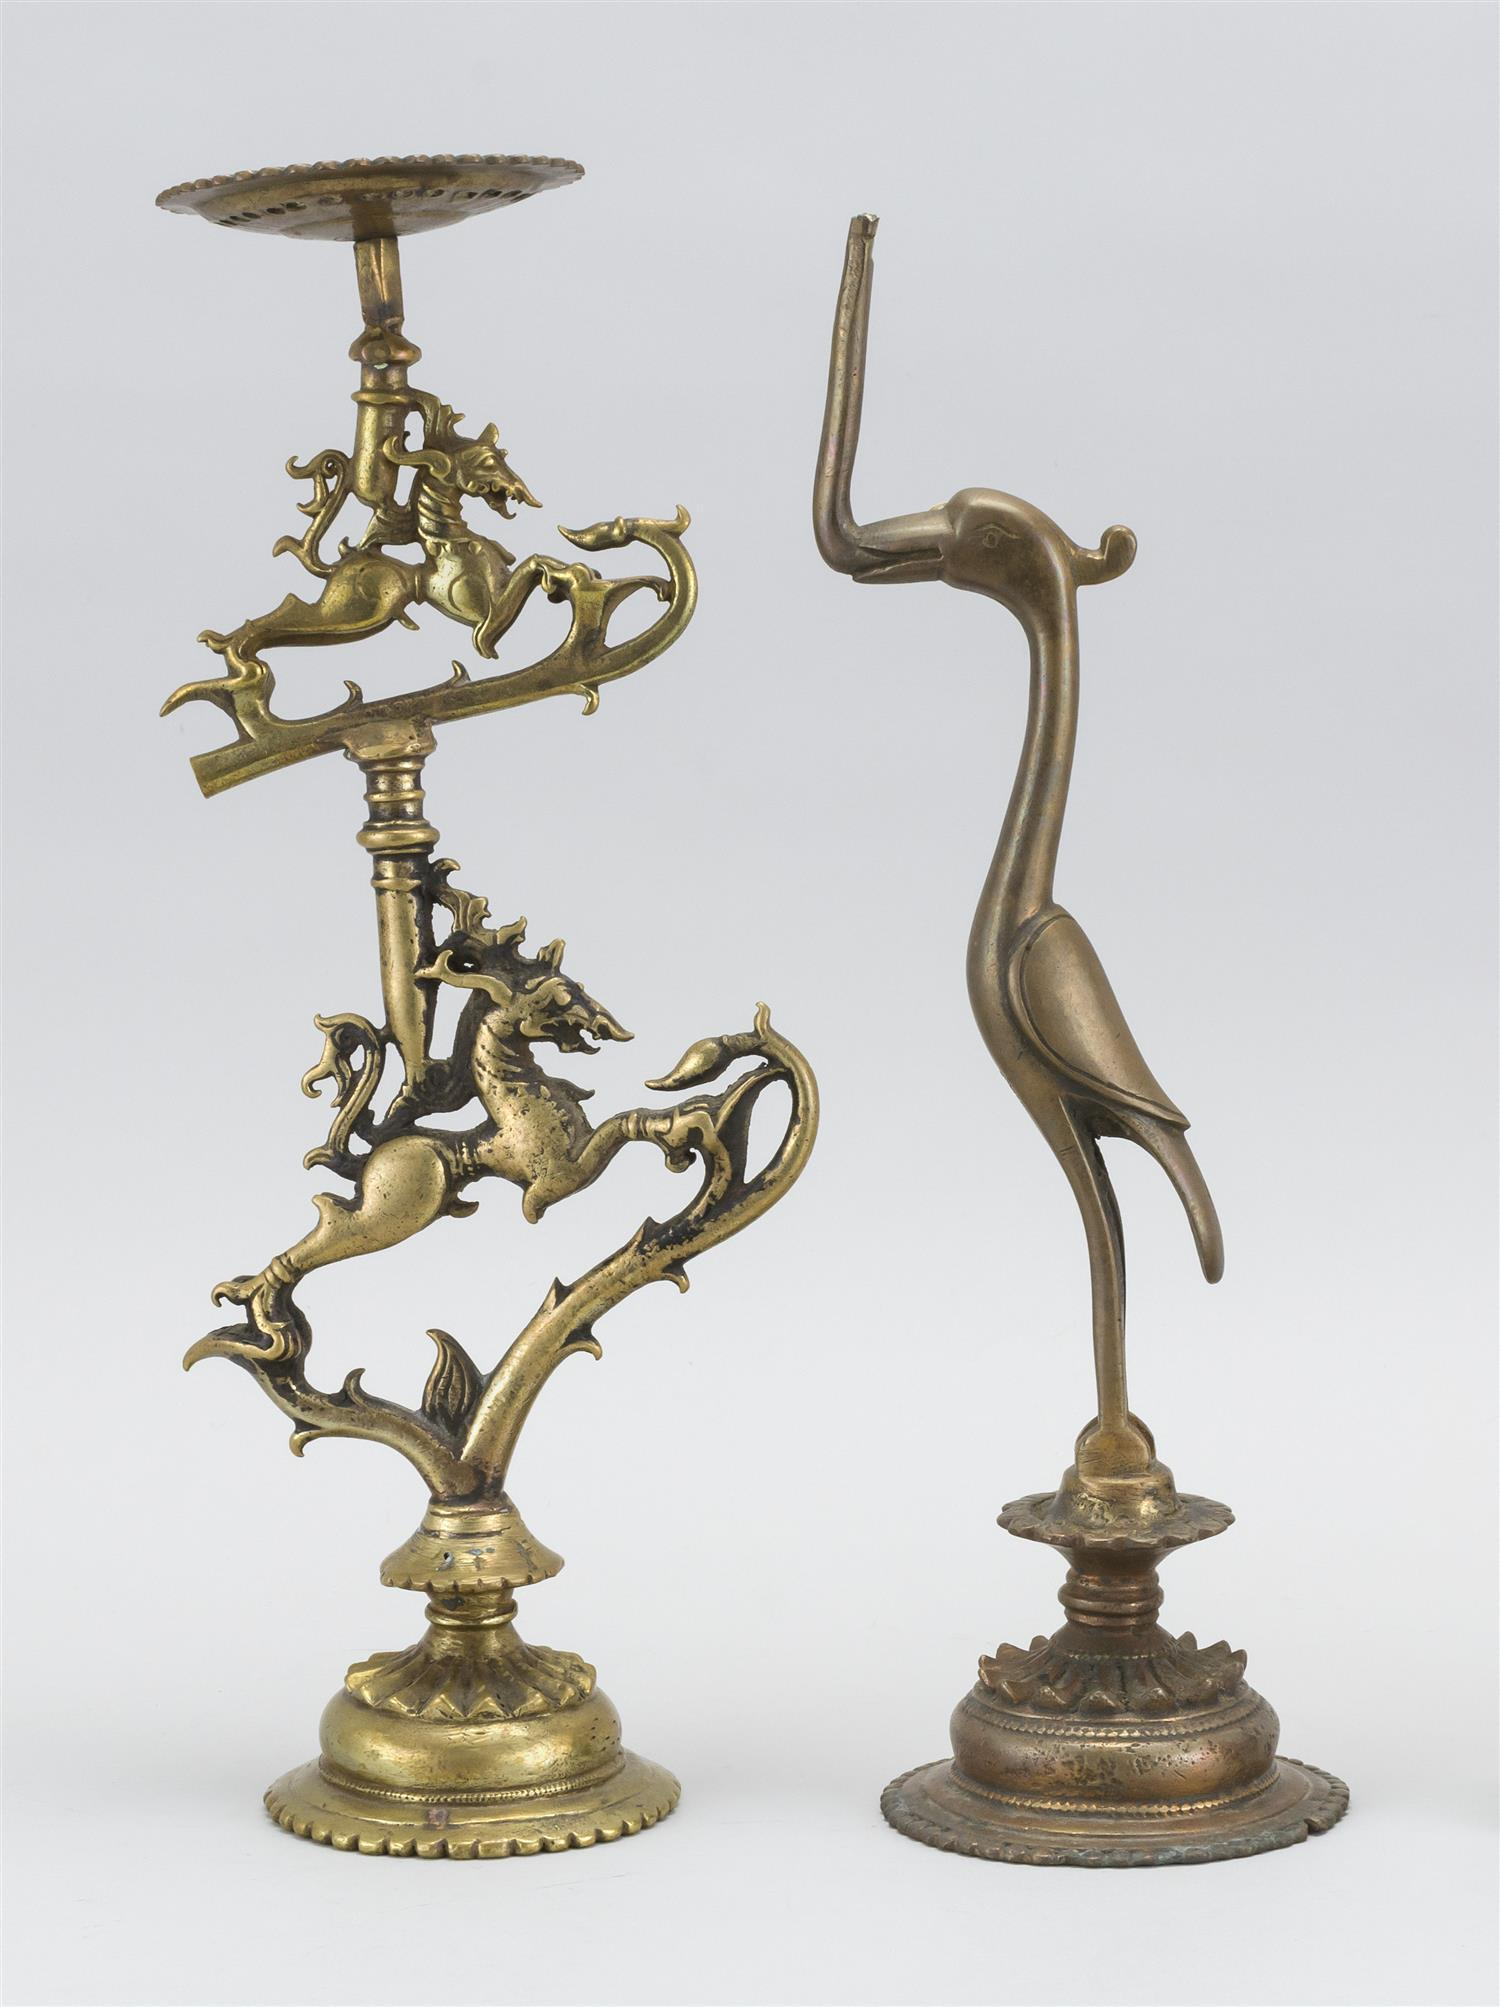 """TWO PIECES OF INDIAN METALWARE A bronze altar stand in a horse-like creature design, height 13"""", and a bird-form base for an altar s..."""